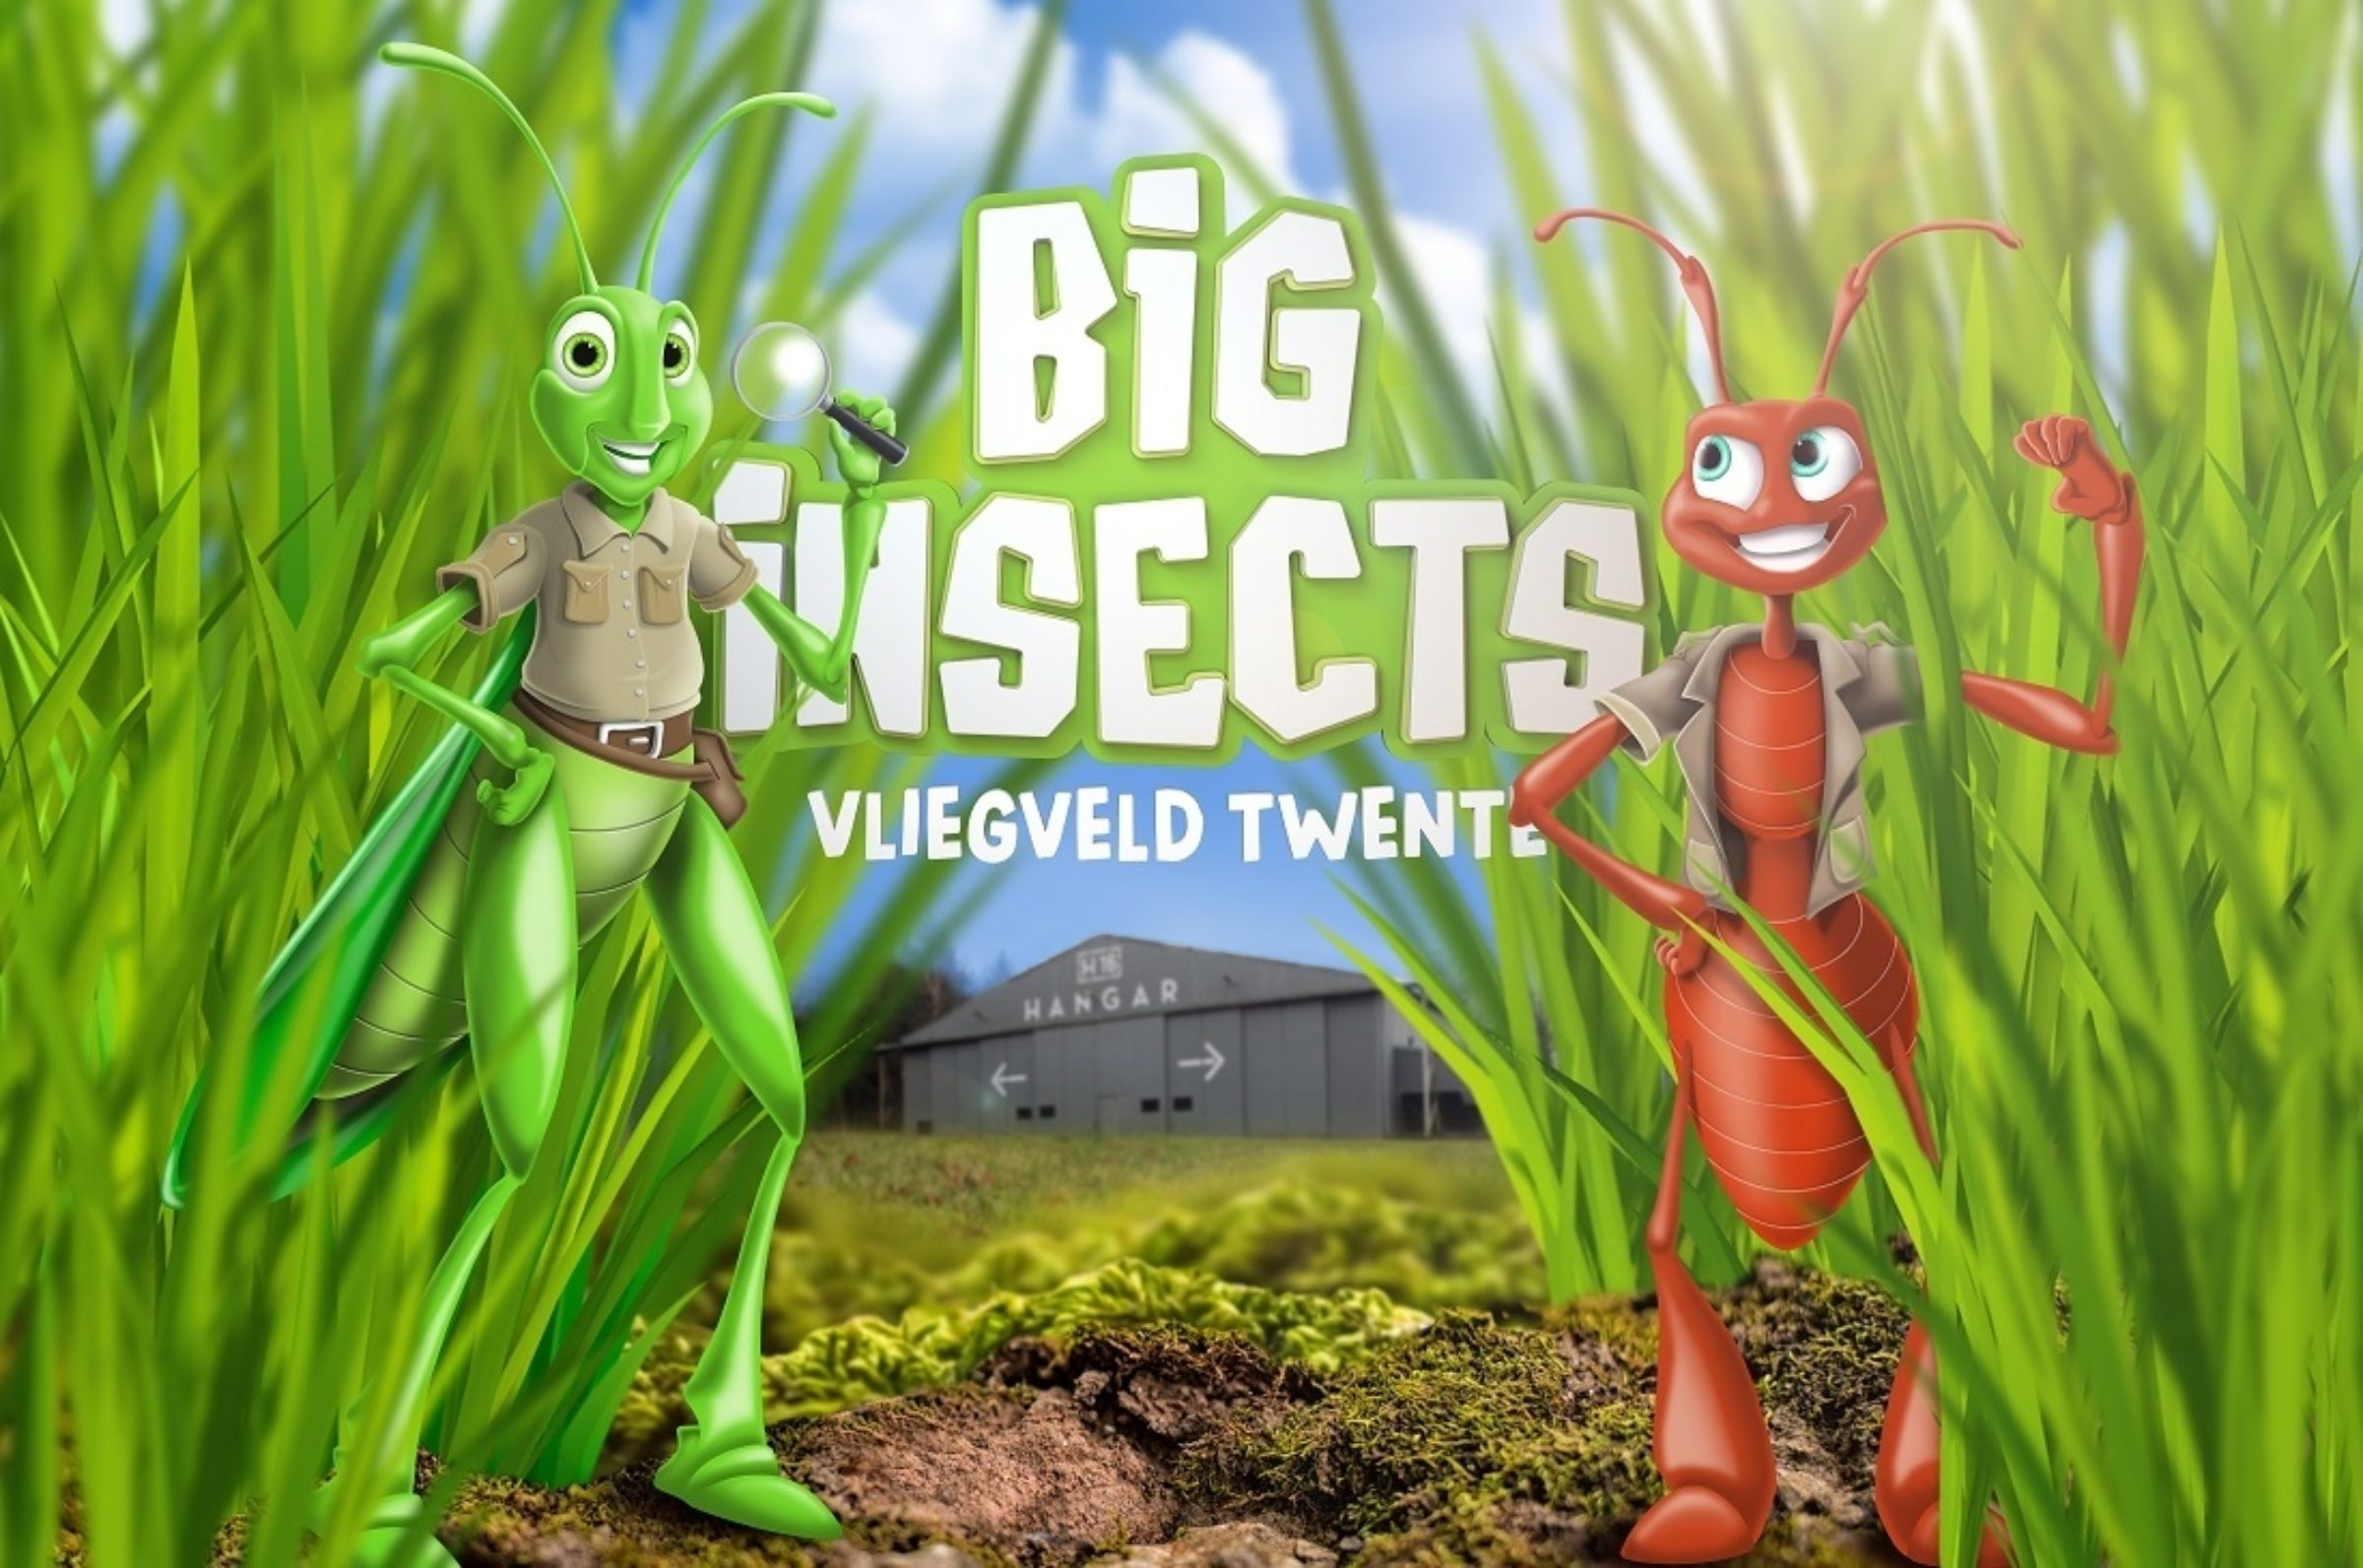 Big Insects